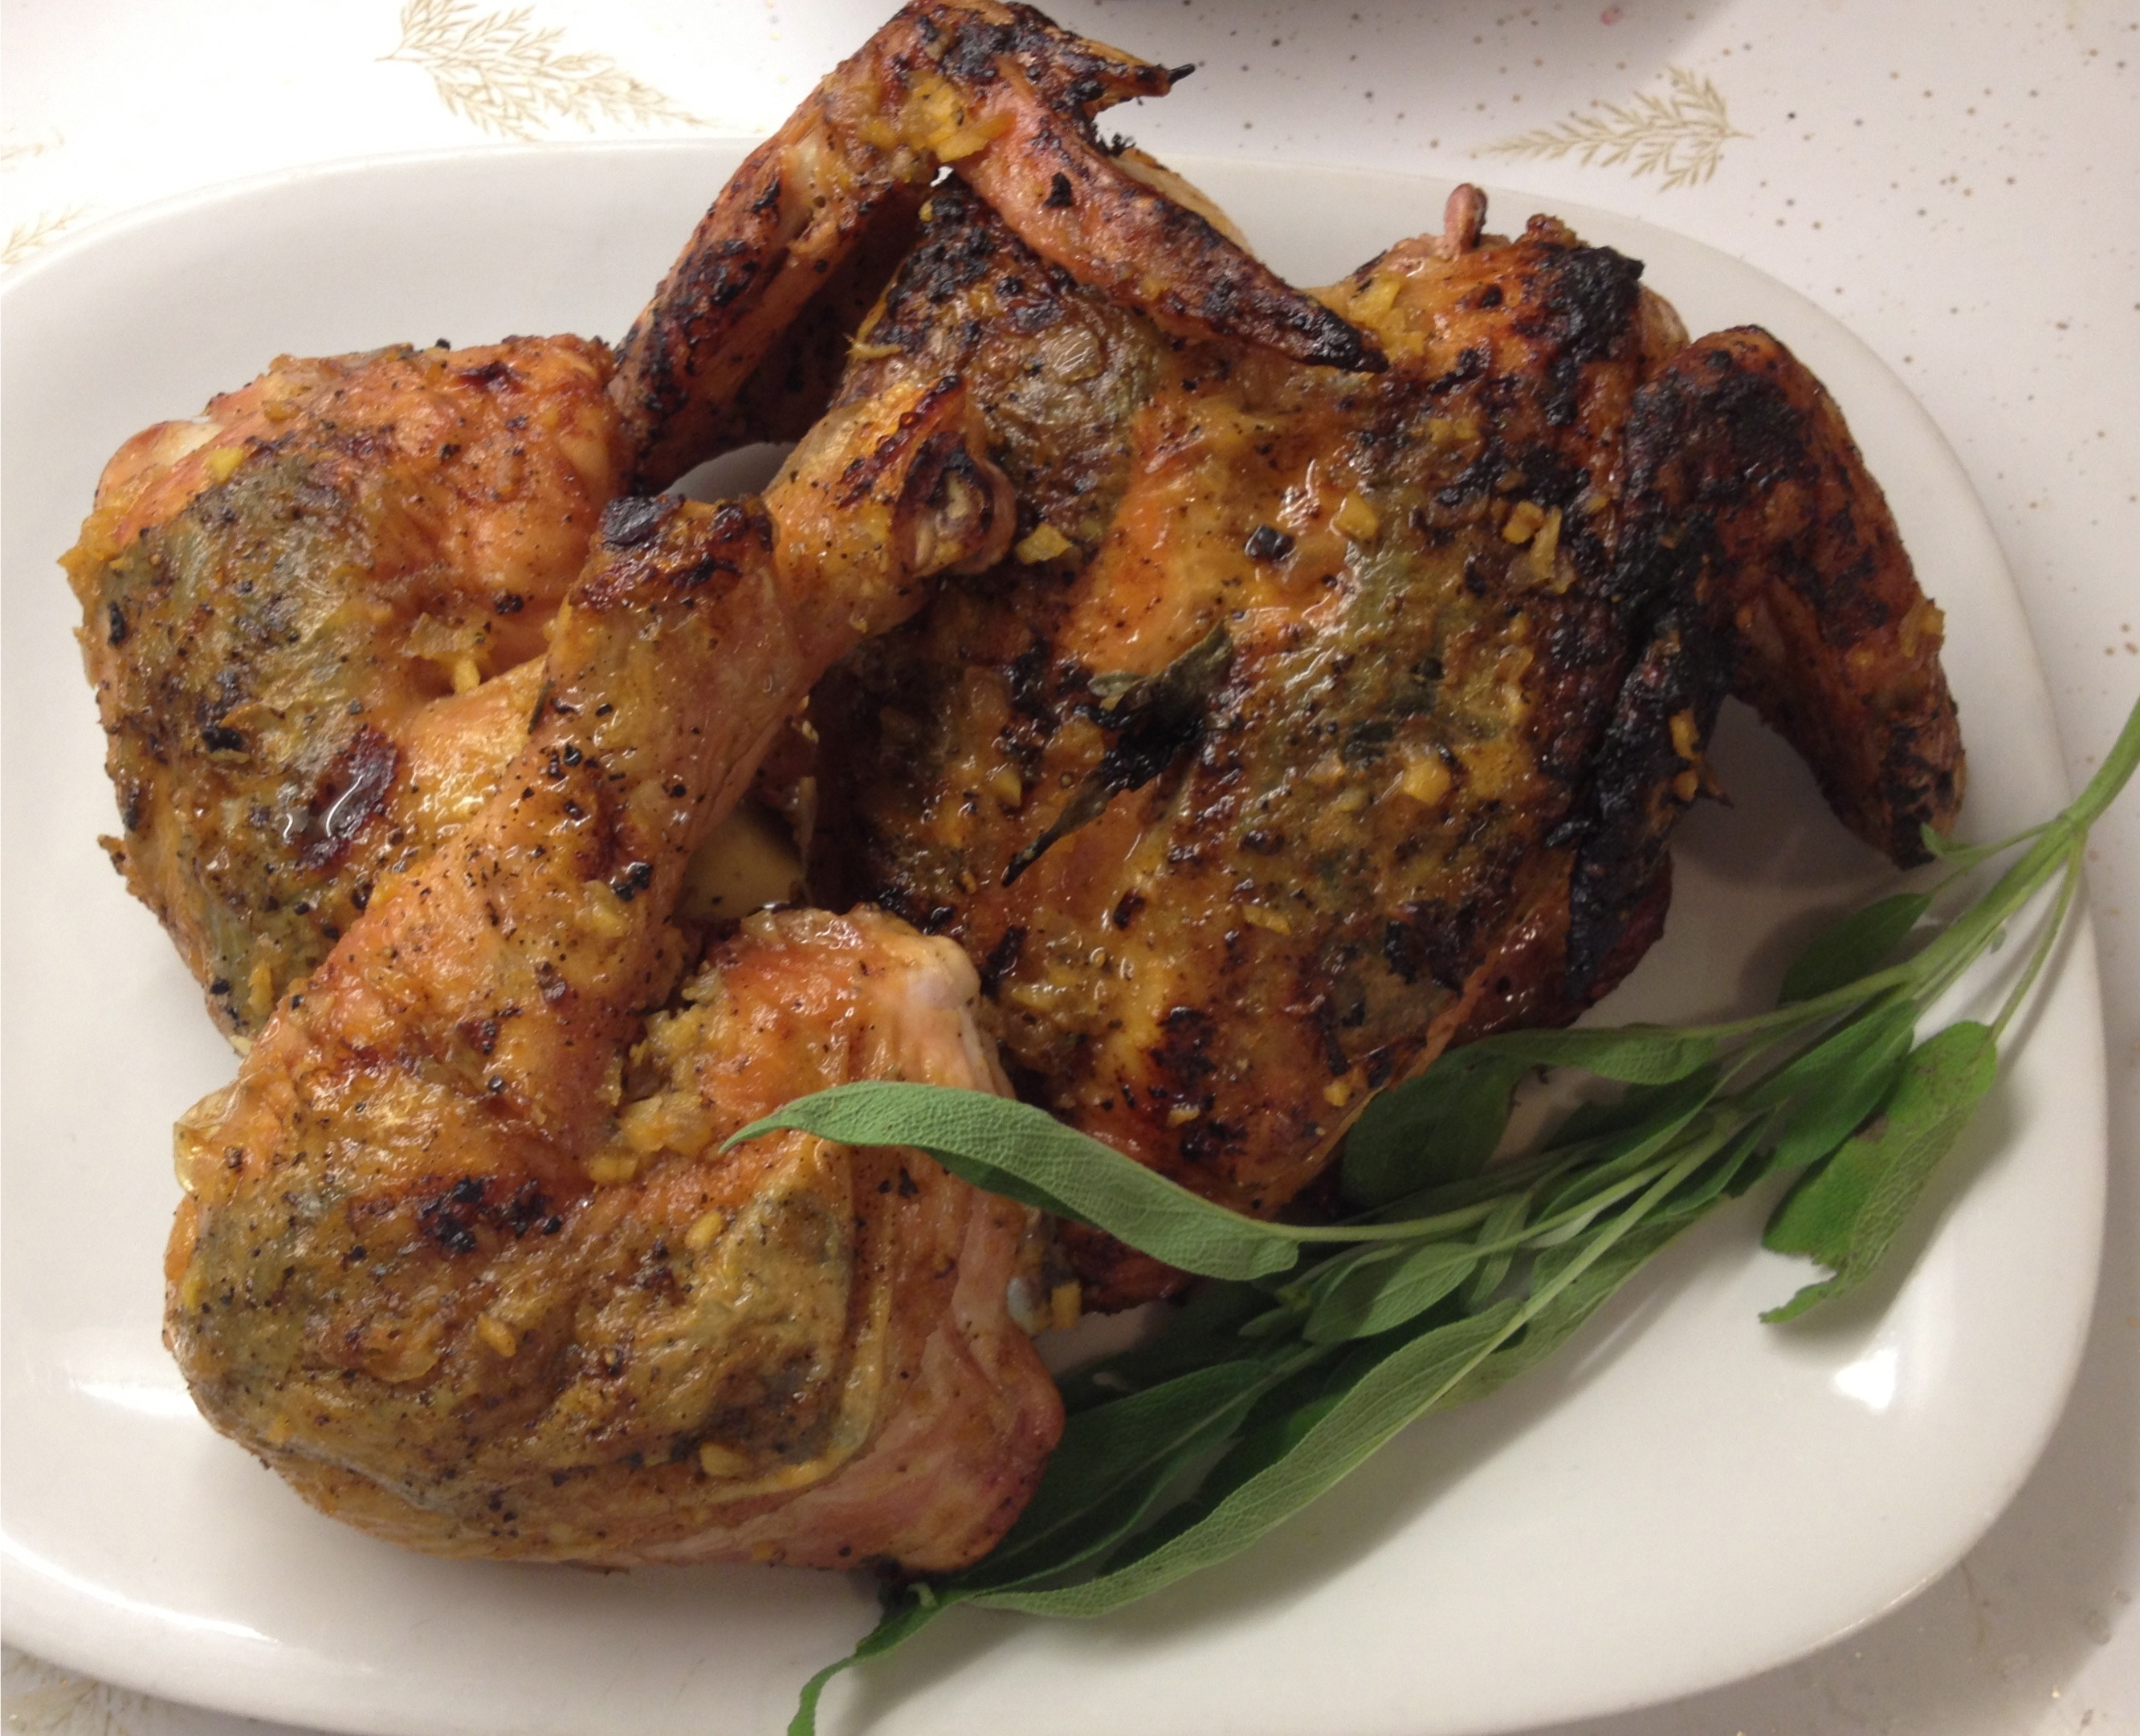 Grilled chicken with a Lemon Ginger Basting Sauce on a white platter with a stem of sage.